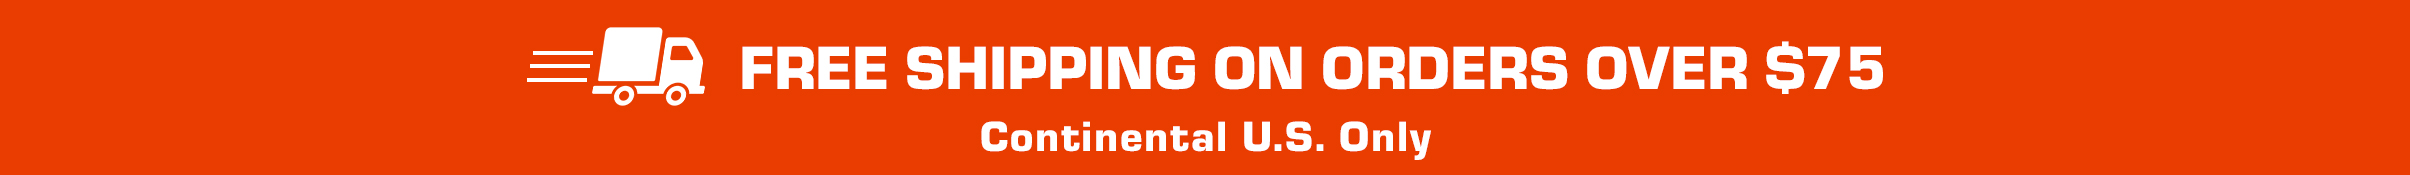 Continental U.S. Only